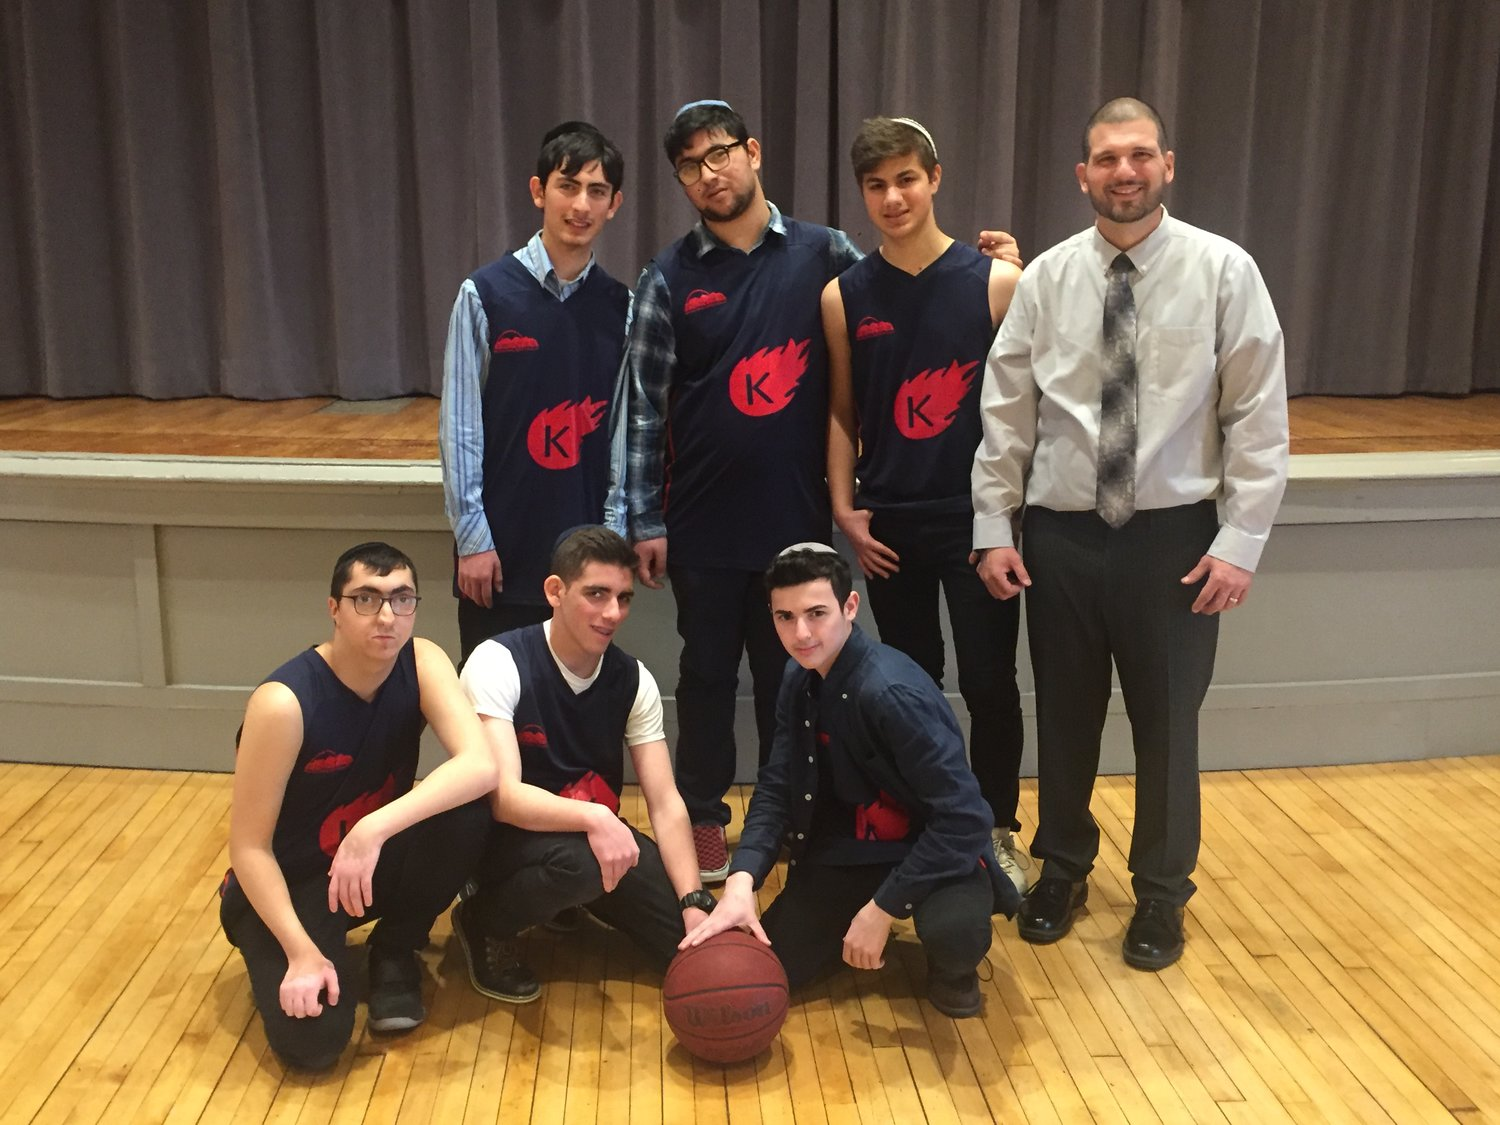 The Kulanu Academy 2019 boys' basketball team. Standing, from left, Moshe Levinson, Moshe Marashli, Yossi Tahalov and coach Vincent Rougê. Kneeling, from left, Gavriel Imani, Yosef Krasner and Donny Hoschander. Not pictured: Mayer Farah, Menachem Jacobs and Mike Khadeida.